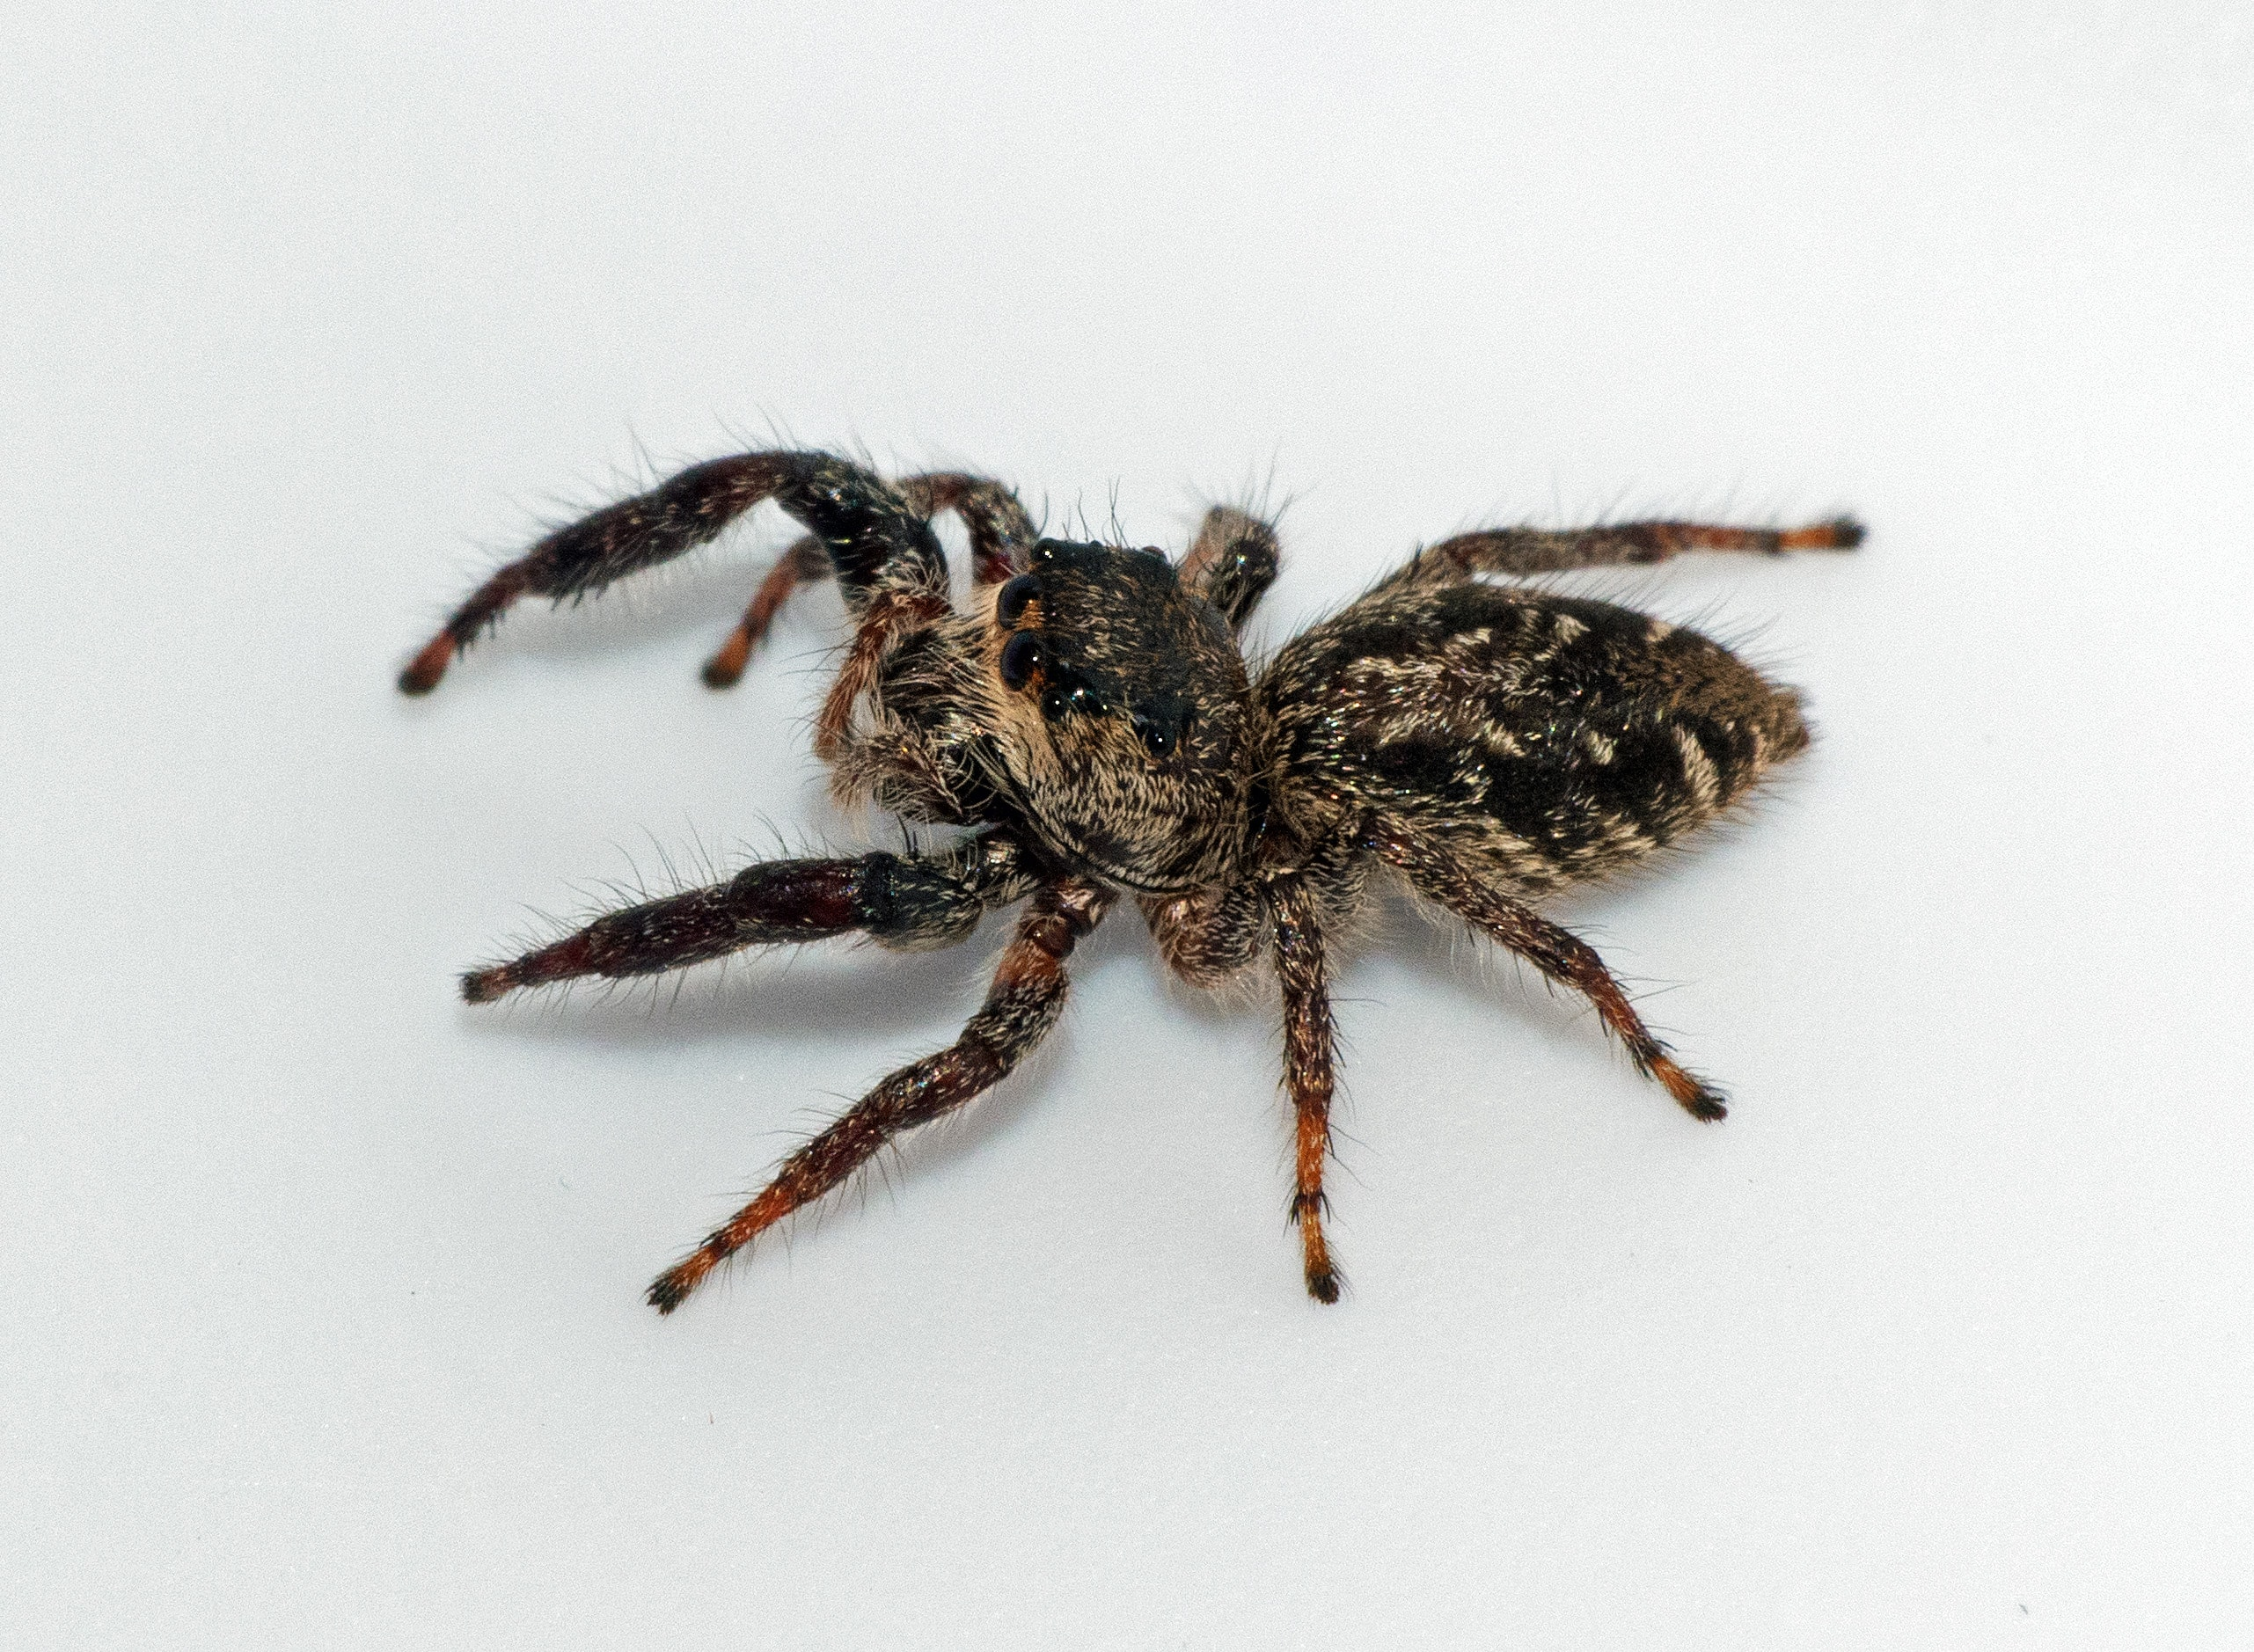 Picture of Eris militaris (Bronze Jumper) - Female - Dorsal